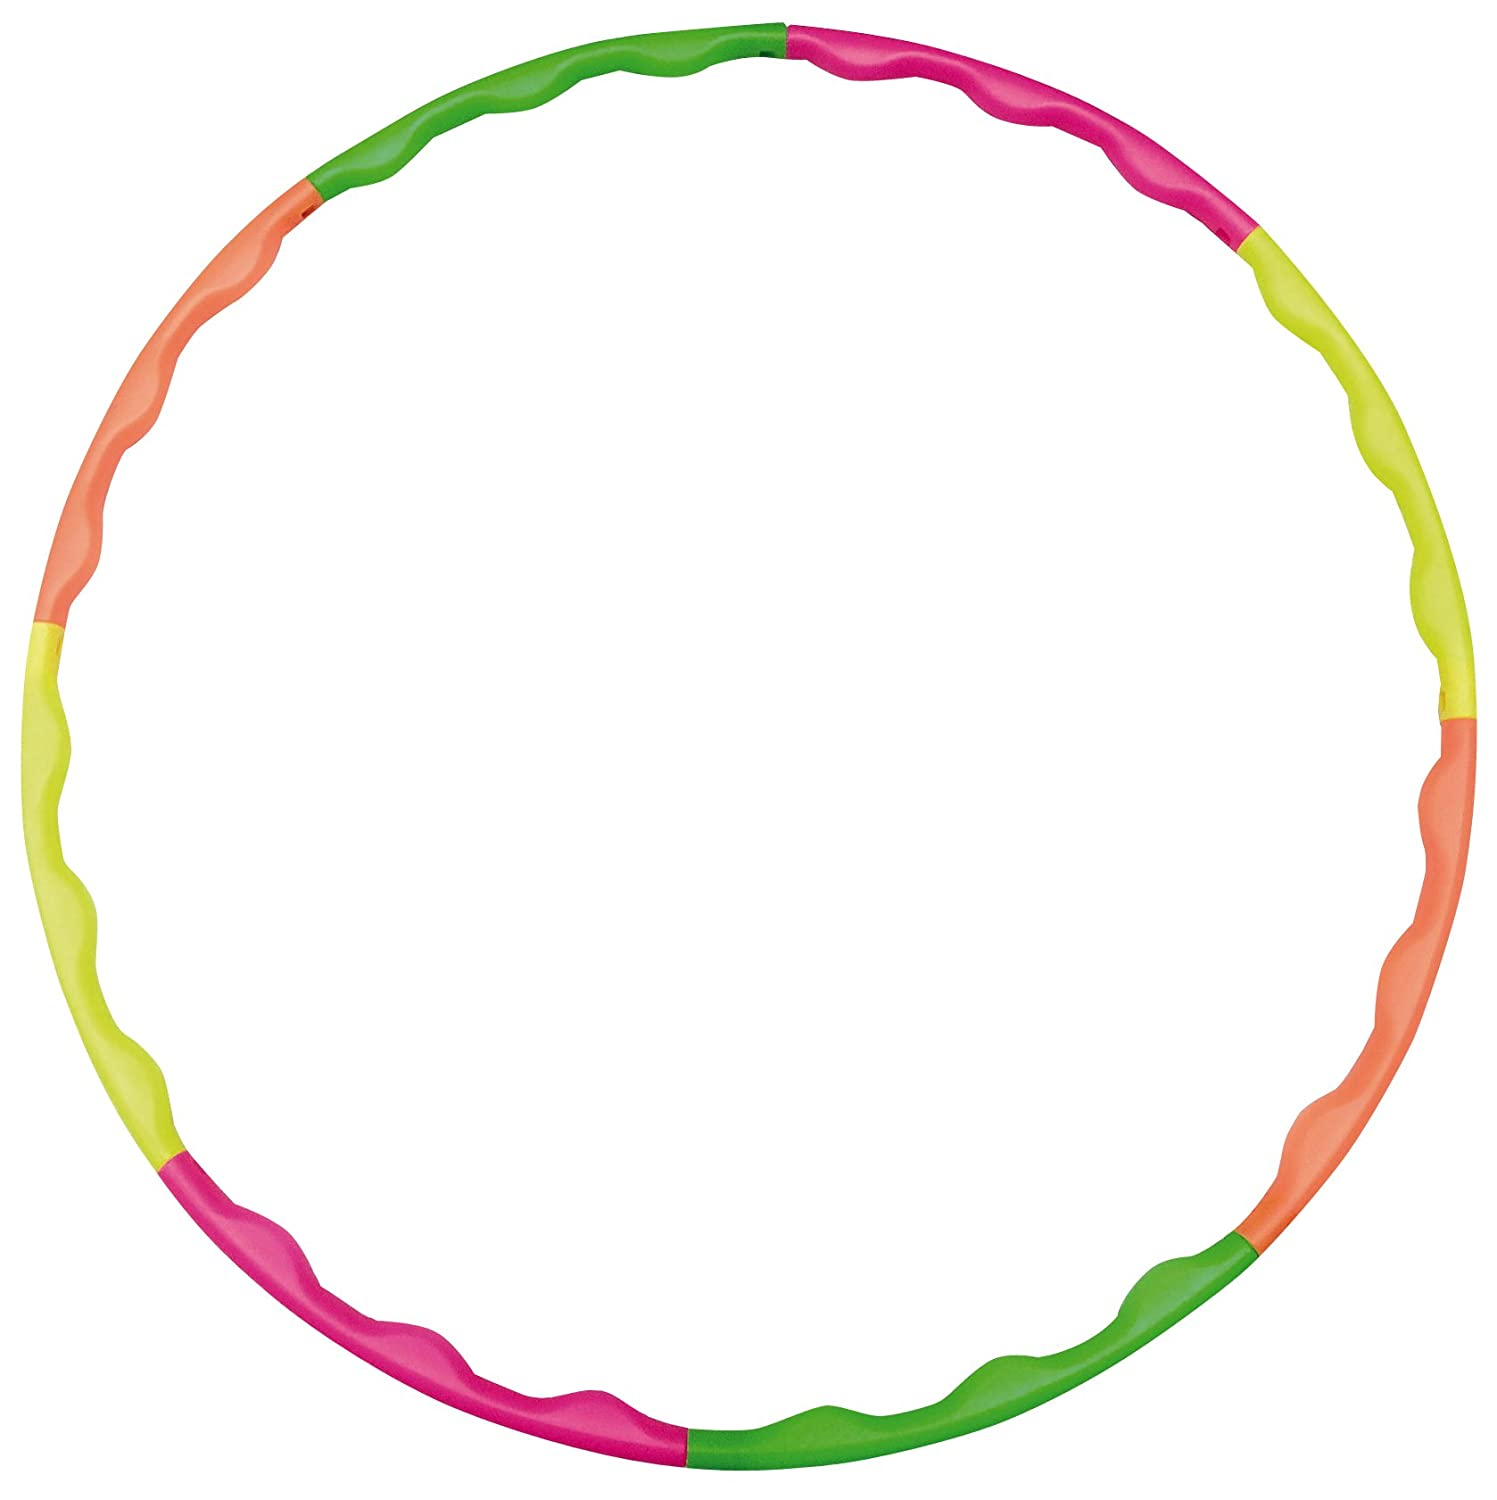 Hudora Hula Hoop, Green, Orange, Yellow, Pink, 76391 One Size